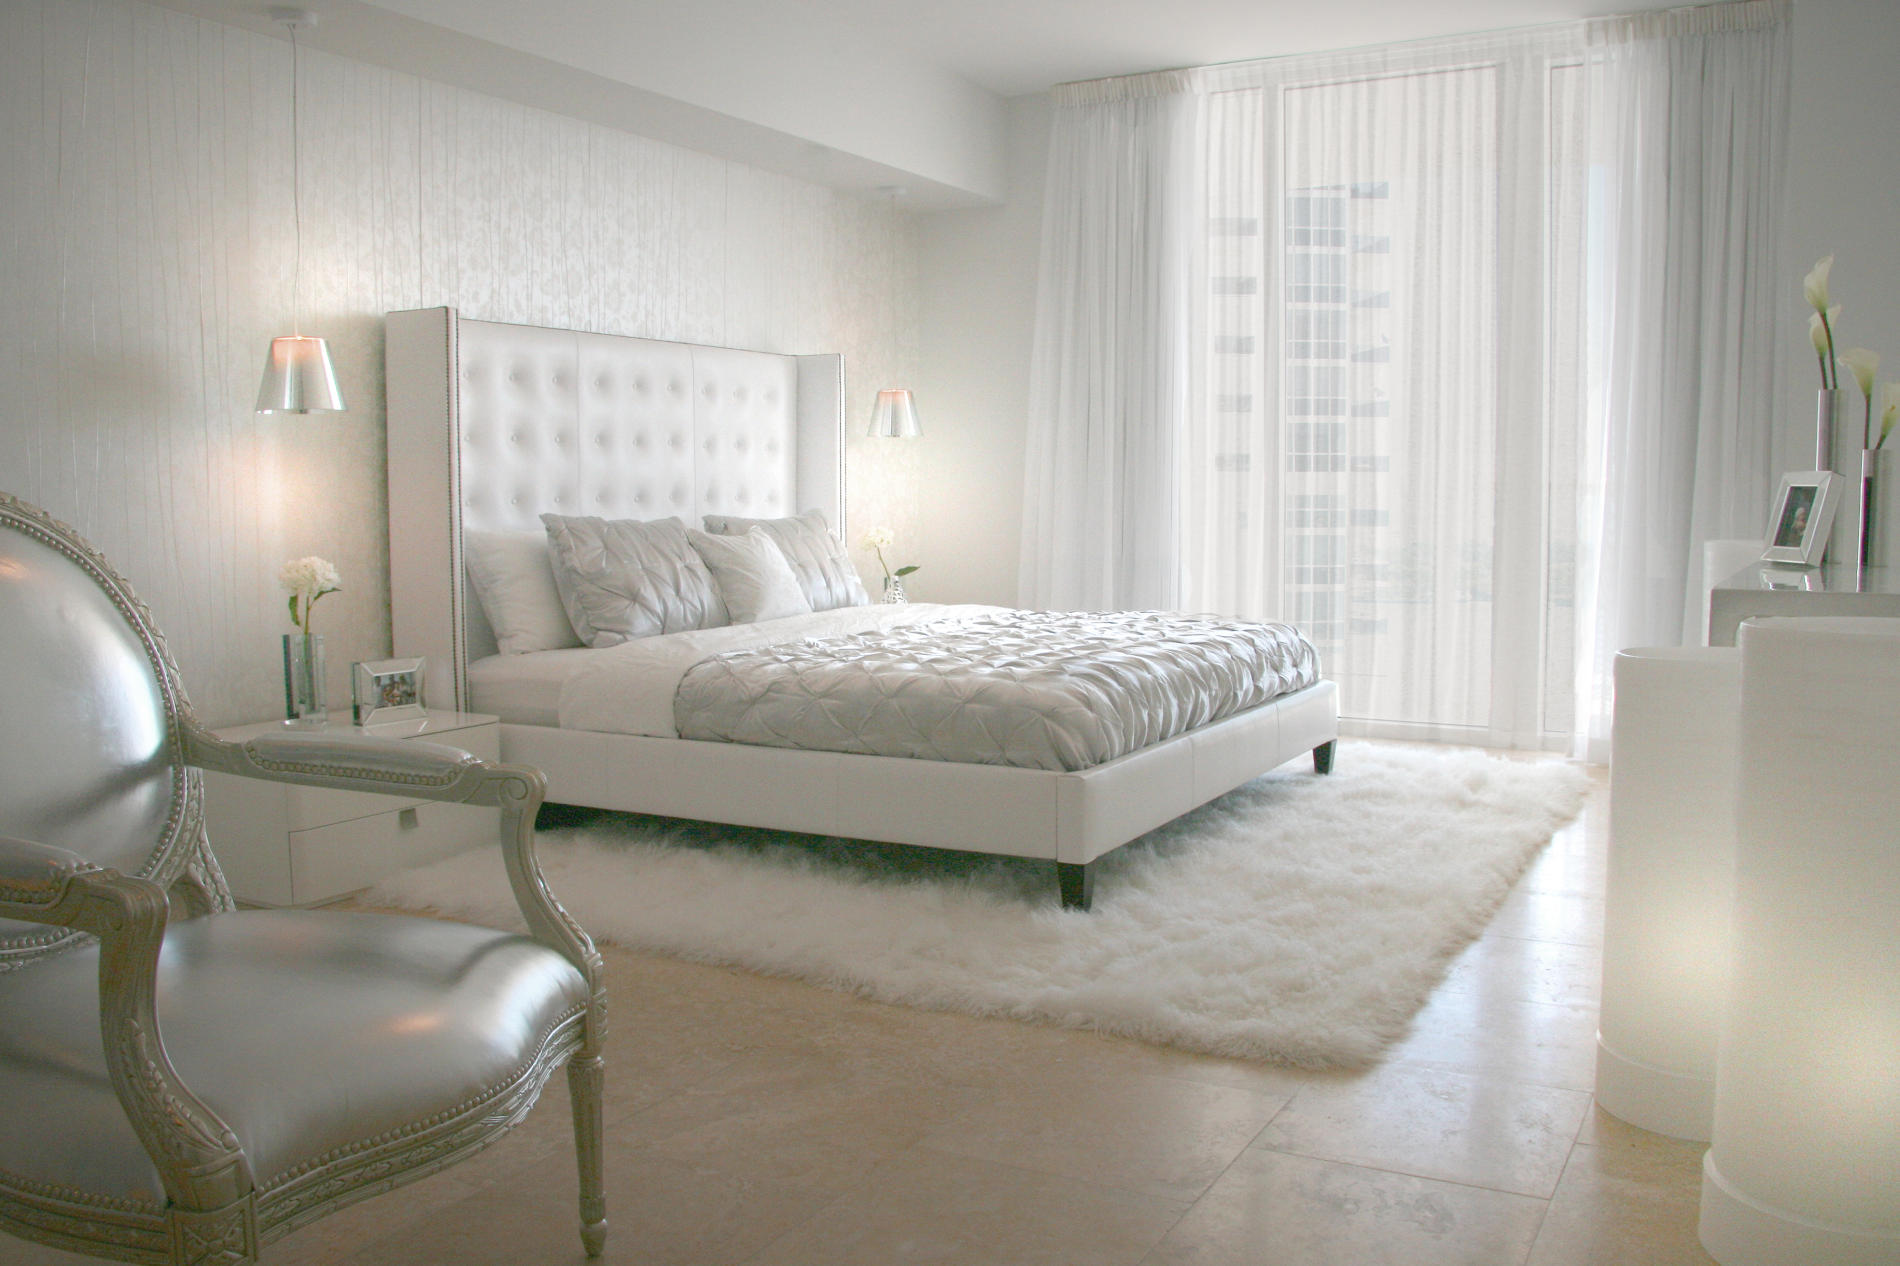 Your Bedroom Air Conditioning Can Make or Break Your Decor ... on Bedroom Curtain Ideas  id=30147